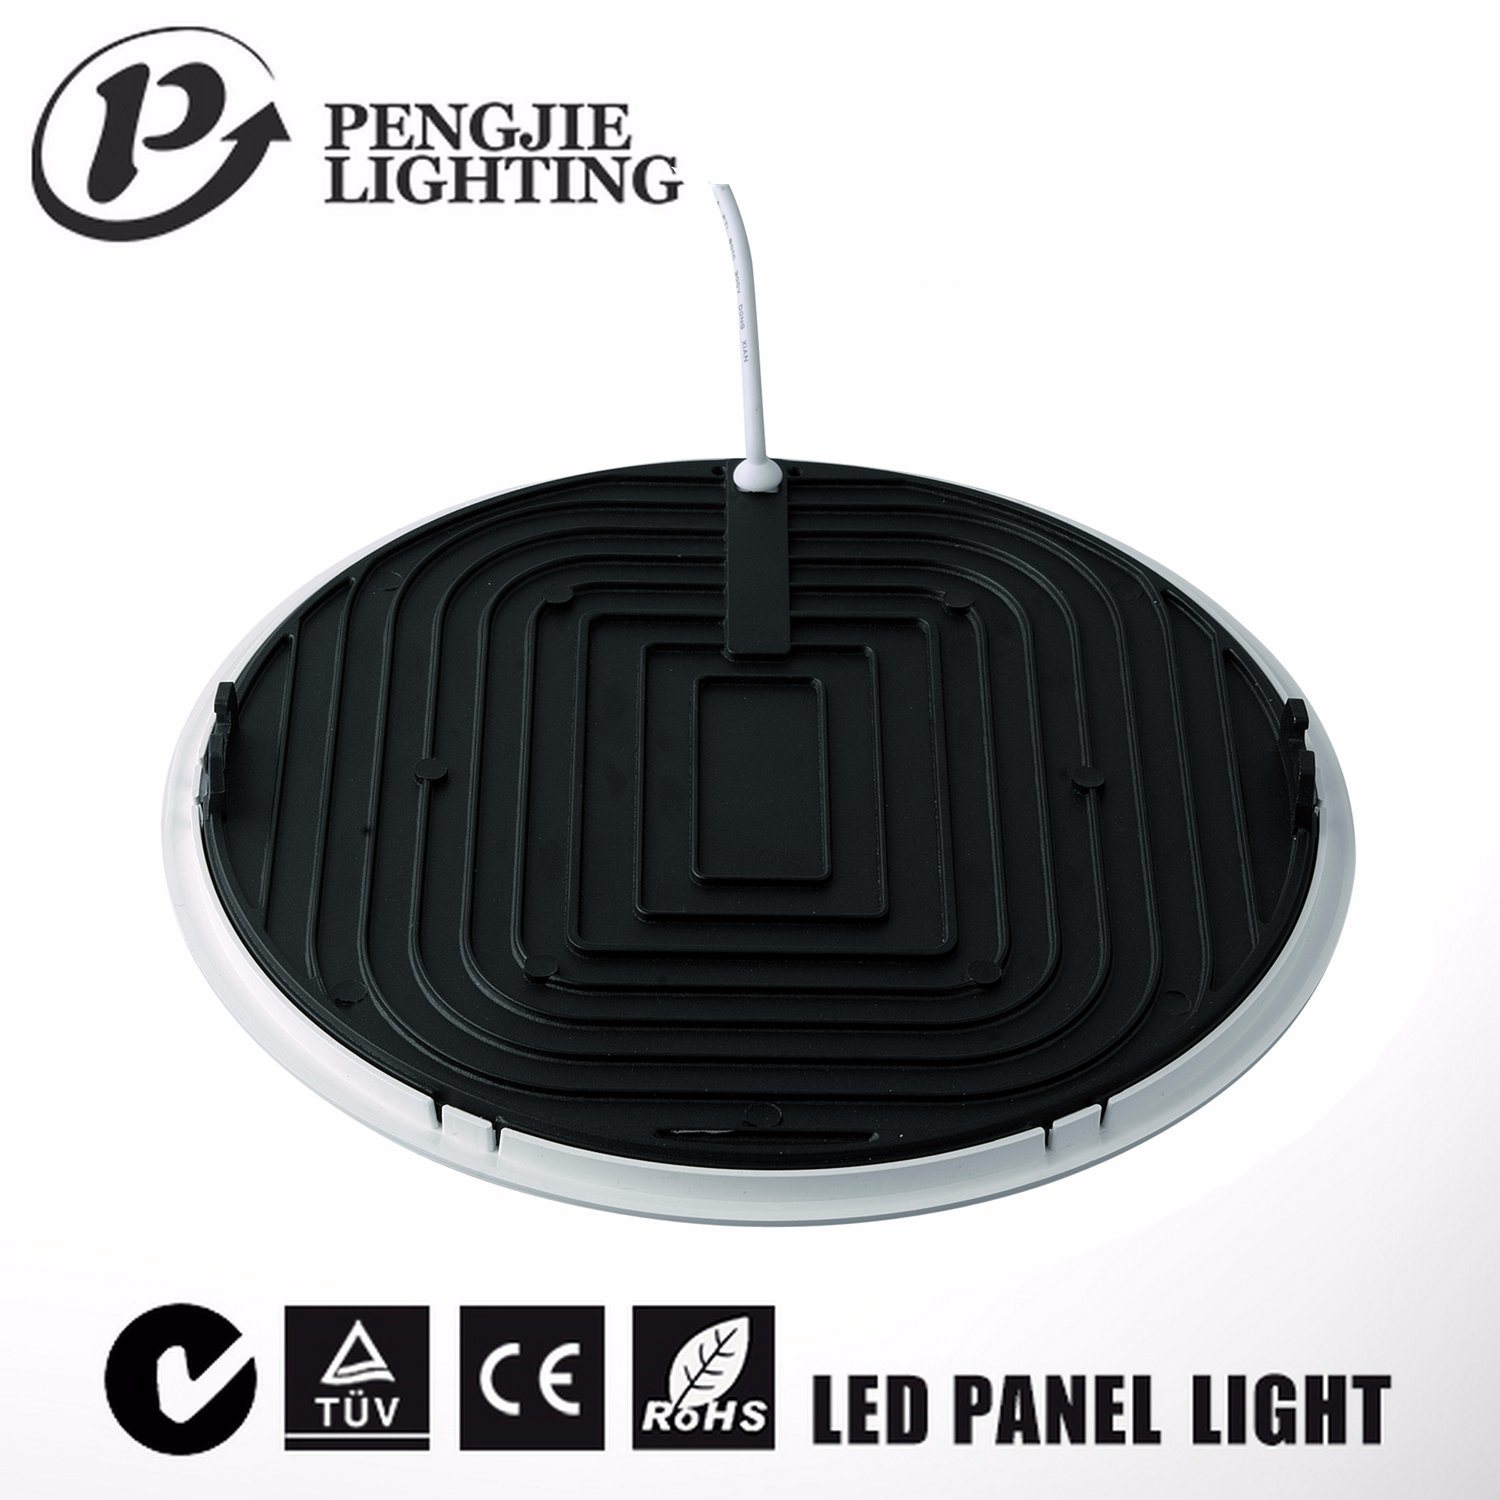 30W Plastic Cover Ultra Slim LED Panel Light for Ceiling